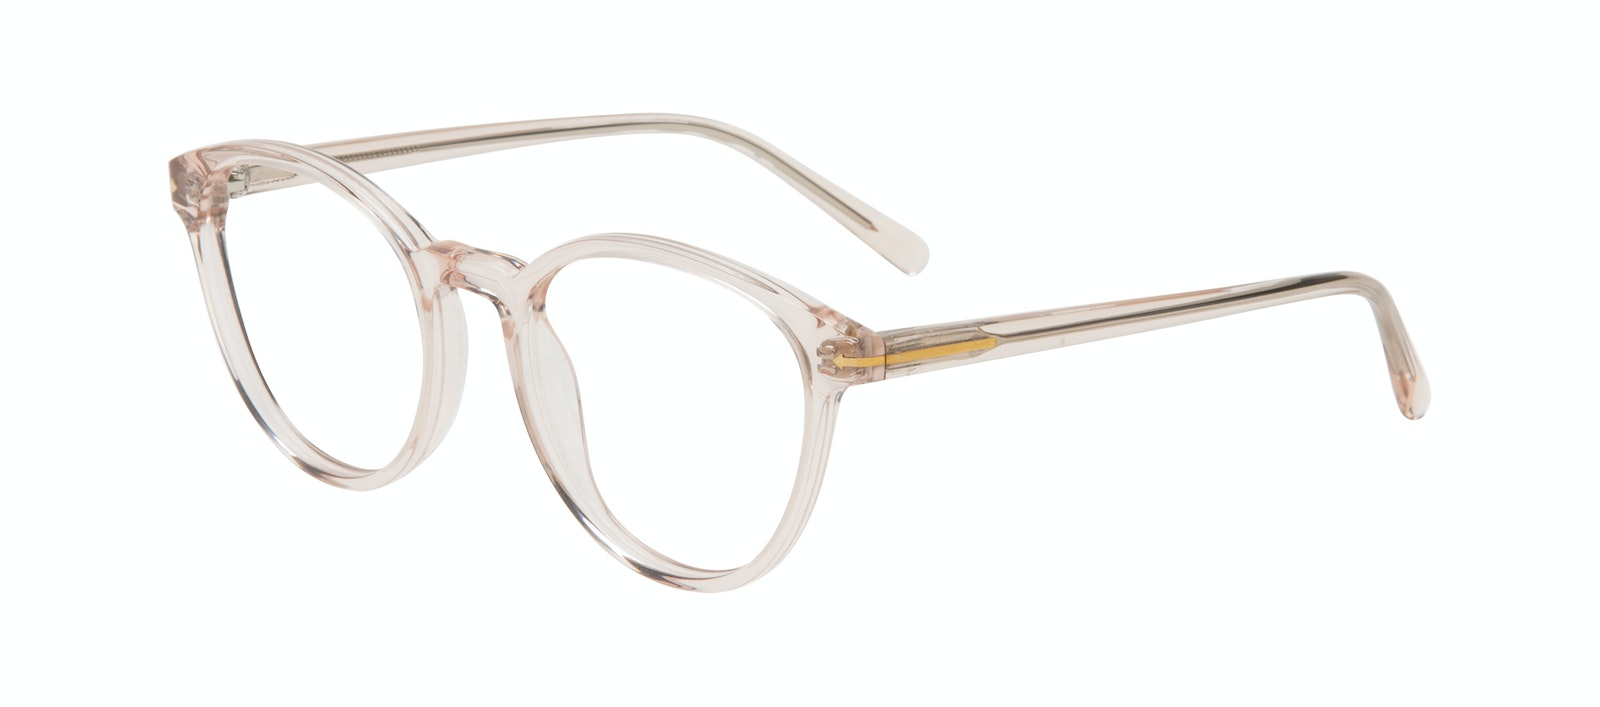 Affordable Fashion Glasses Round Eyeglasses Women London Vanilla Tilt